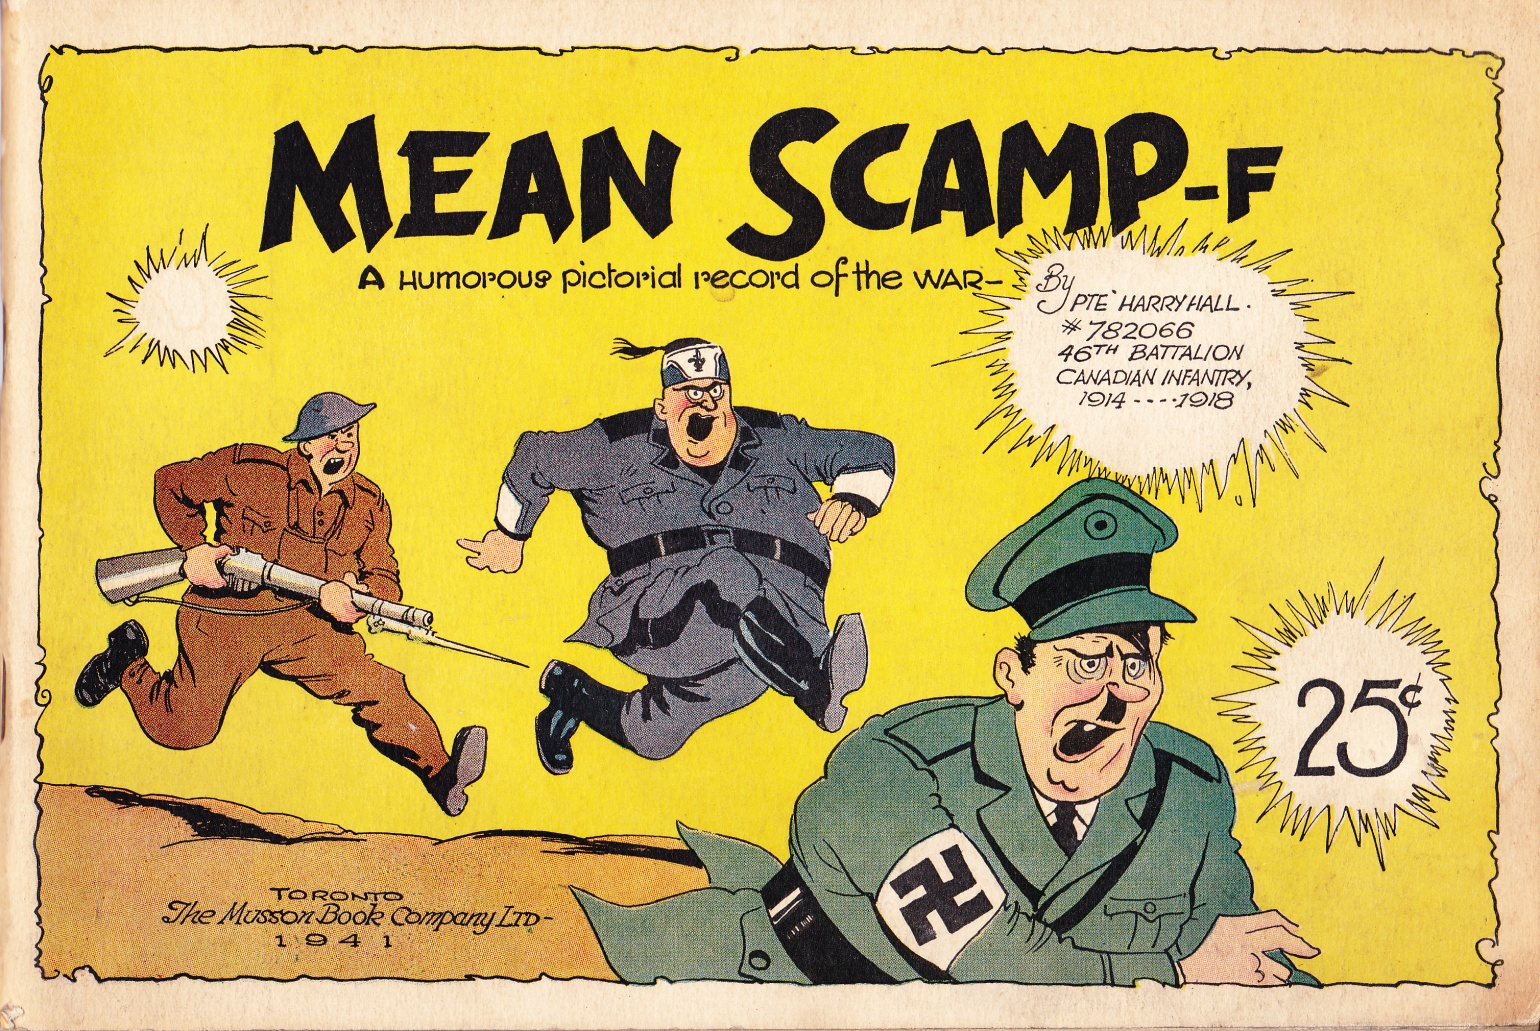 C:\Users\Robert\Documents\CARTOONING ILLUSTRATION ANIMATION\IMAGE BY CARTOONIST\H\HALL HARRY S, Mean SCAMP-F, 1941, fc.jpg